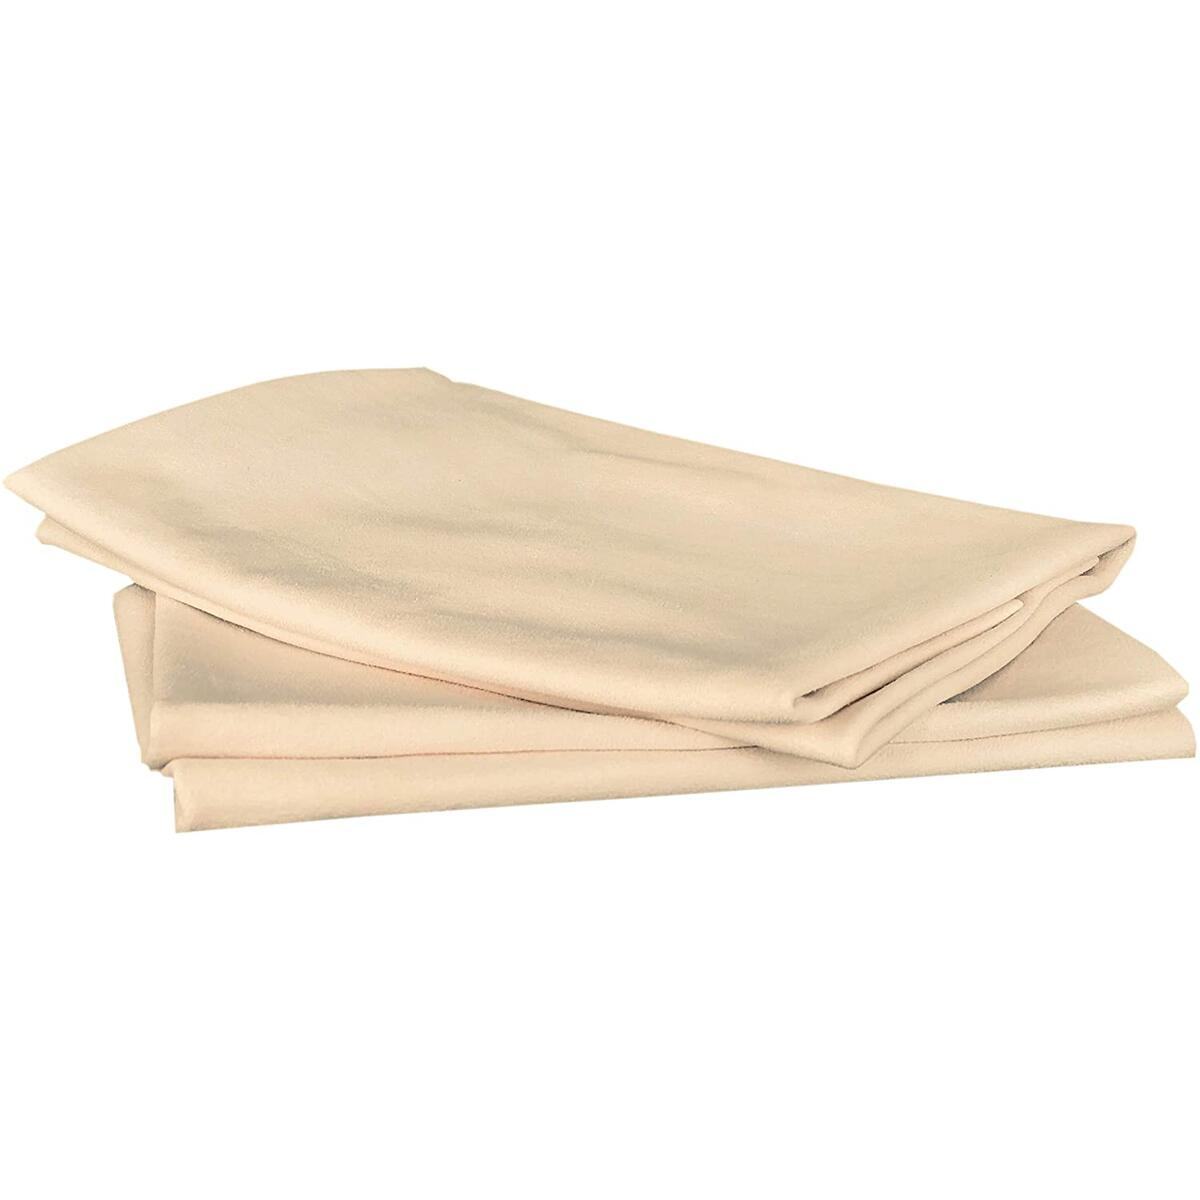 Sheepskin Elite Chamois Drying Cloth Car Drying Towel Real Leather Super Absorbent Fast Drying Natural Chamois Car Wash Cloth Accessory (4 SQ FT in Total)